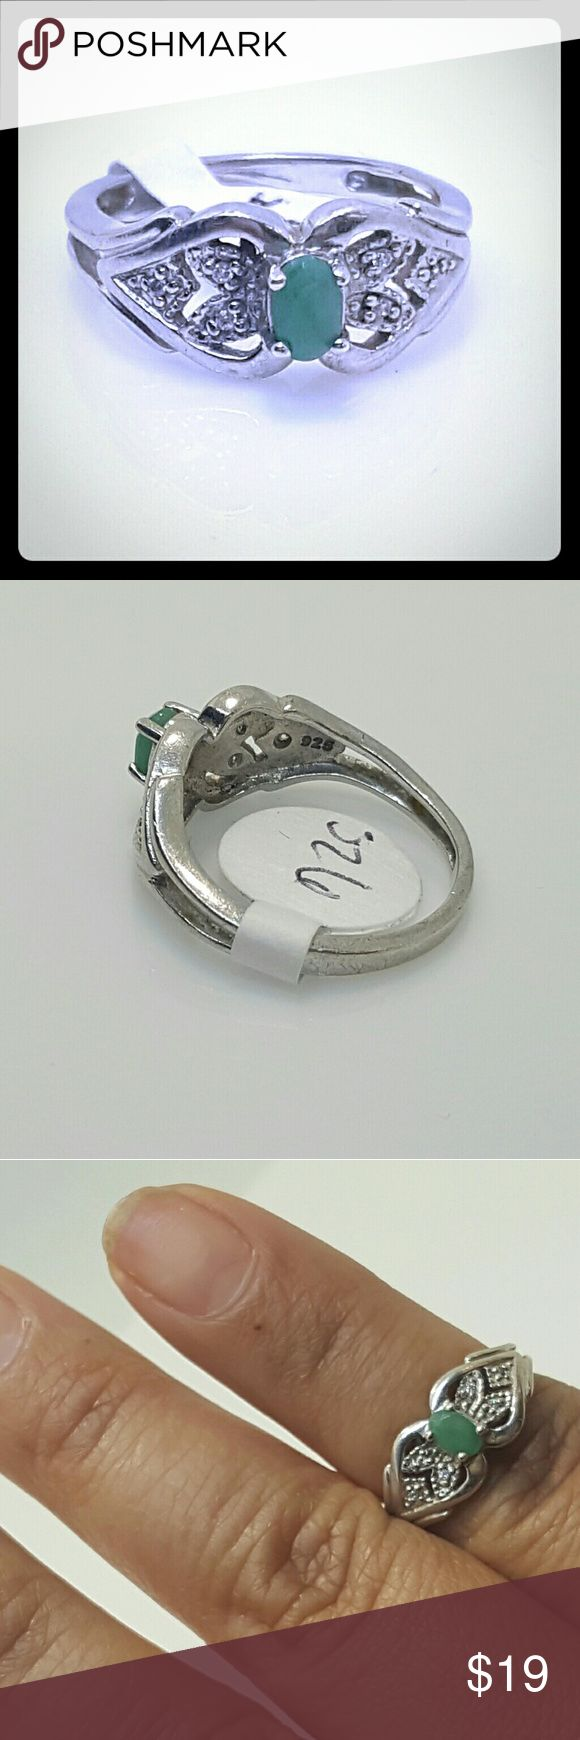 Nice 925 silver ring with jade stone Nice 925 silver ring with jade stone Jewelry Rings